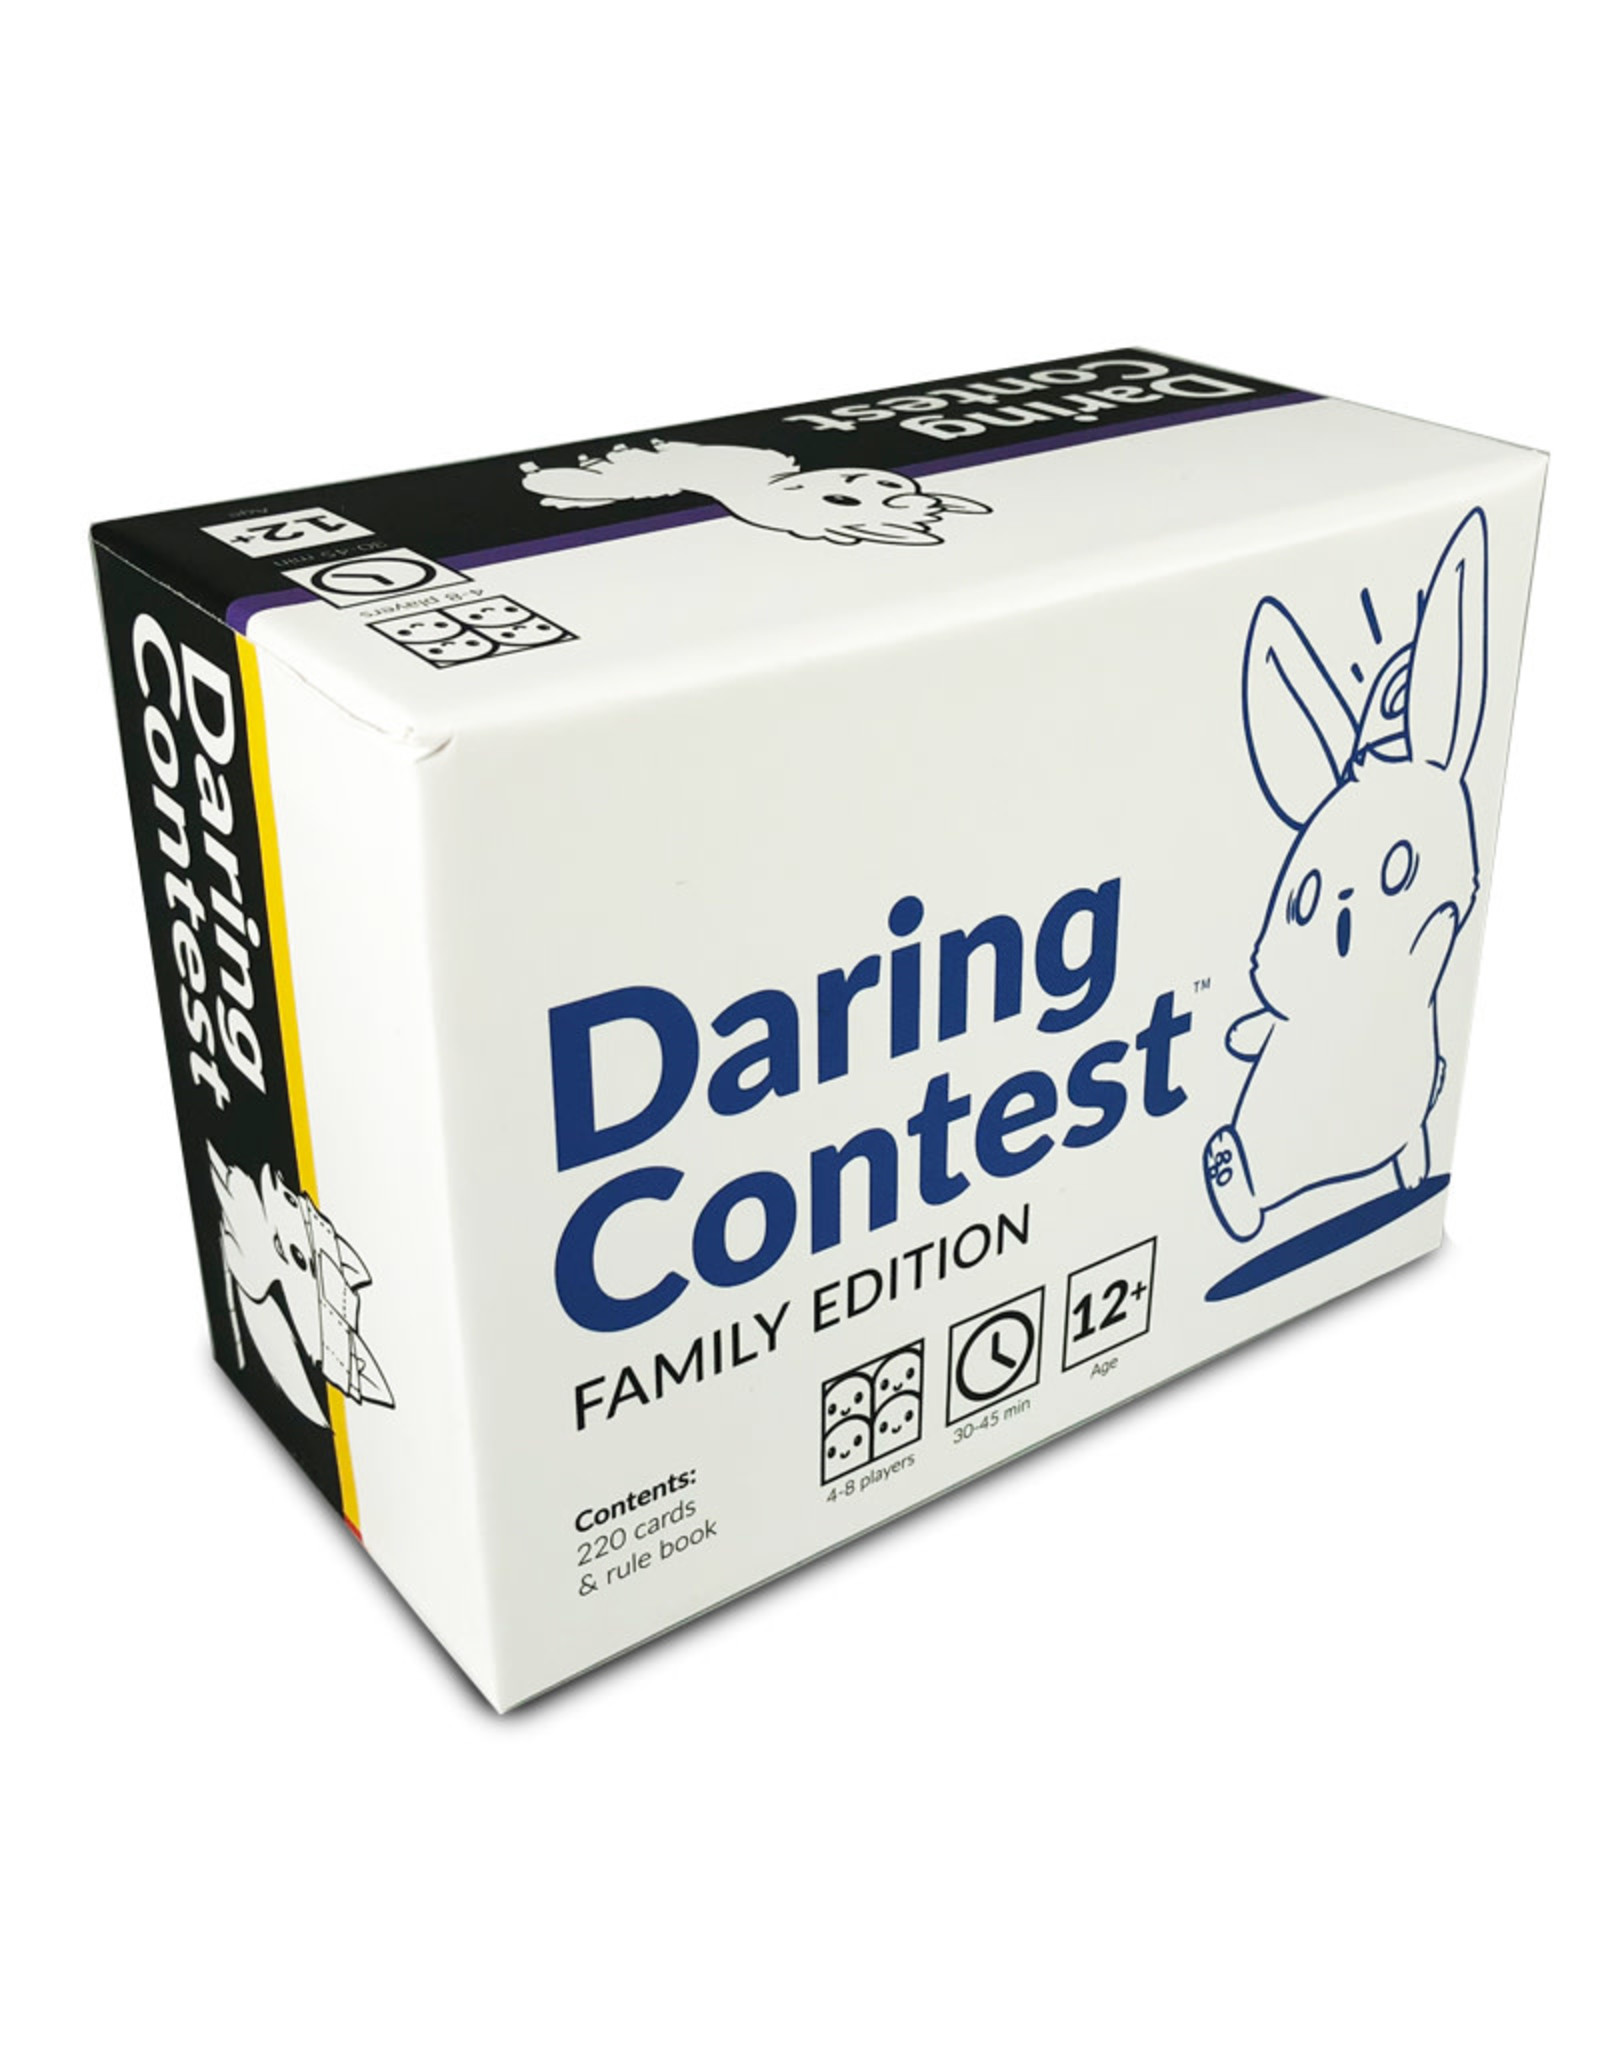 Daring Contest Family Edition